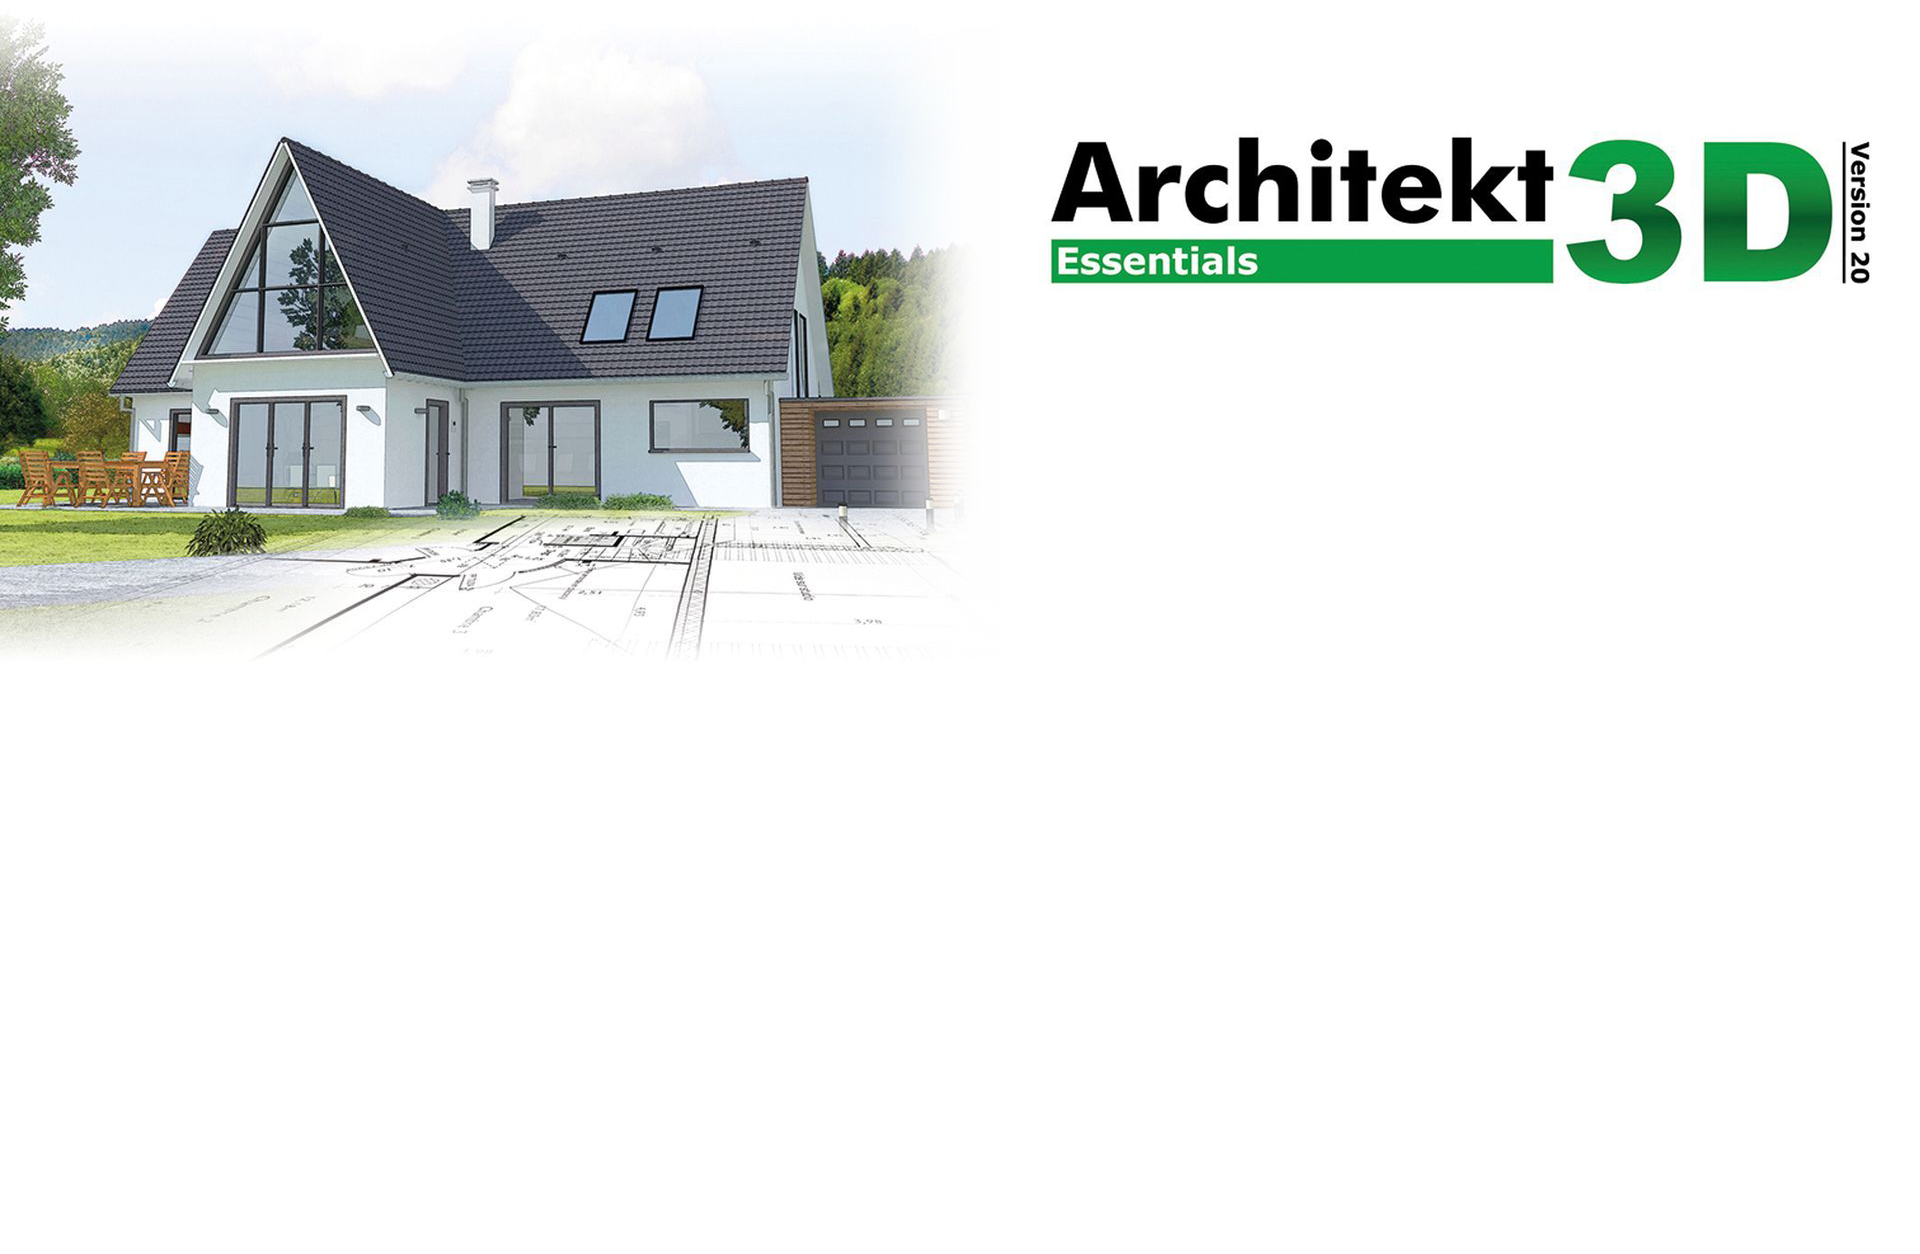 Architekt 3D 20 Essentials